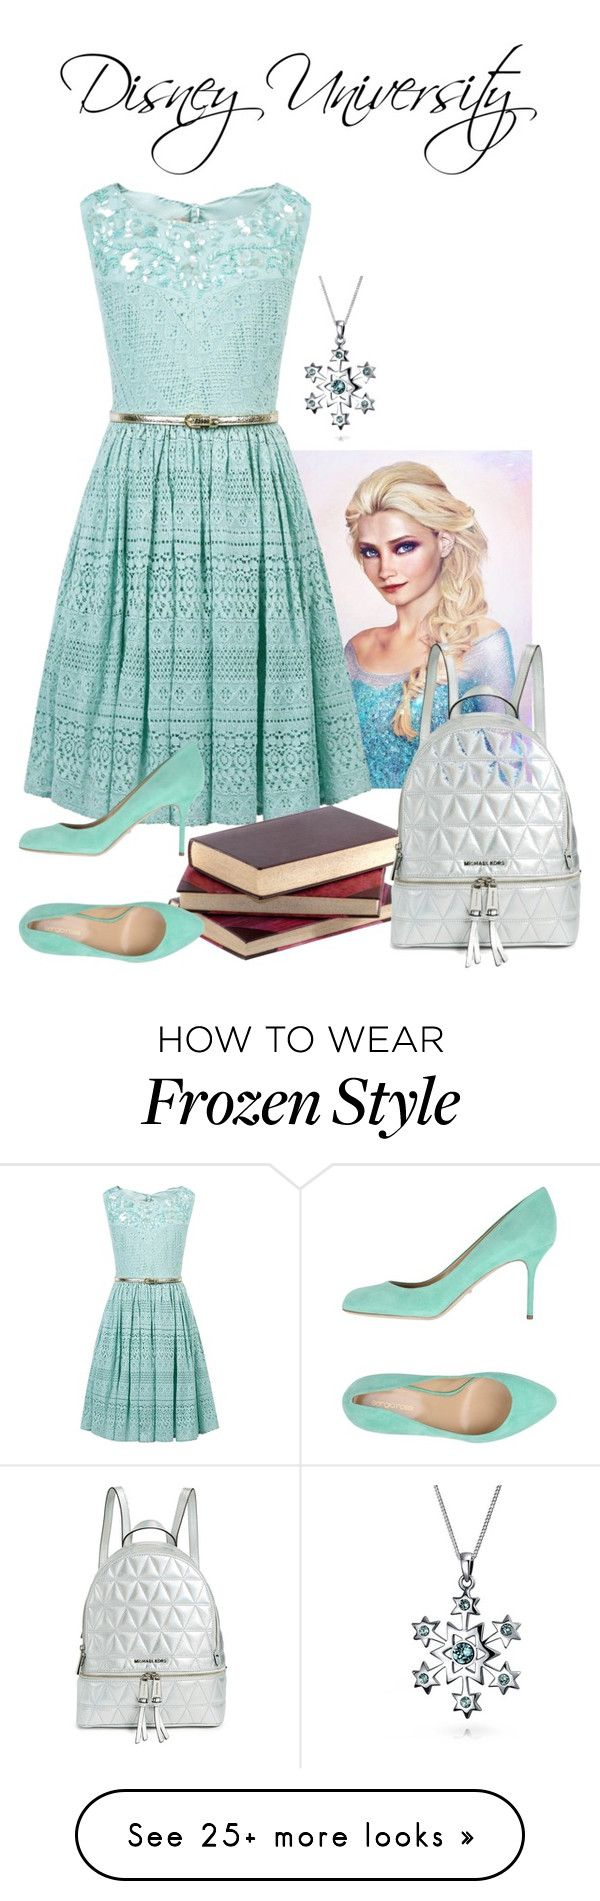 """Disney University-Elsa's first day"" by thespian-at-large on Polyvore featuring Disney, Monsoon, Sergio Rossi, Bling Jewelry and MICHAEL Michael Kors"